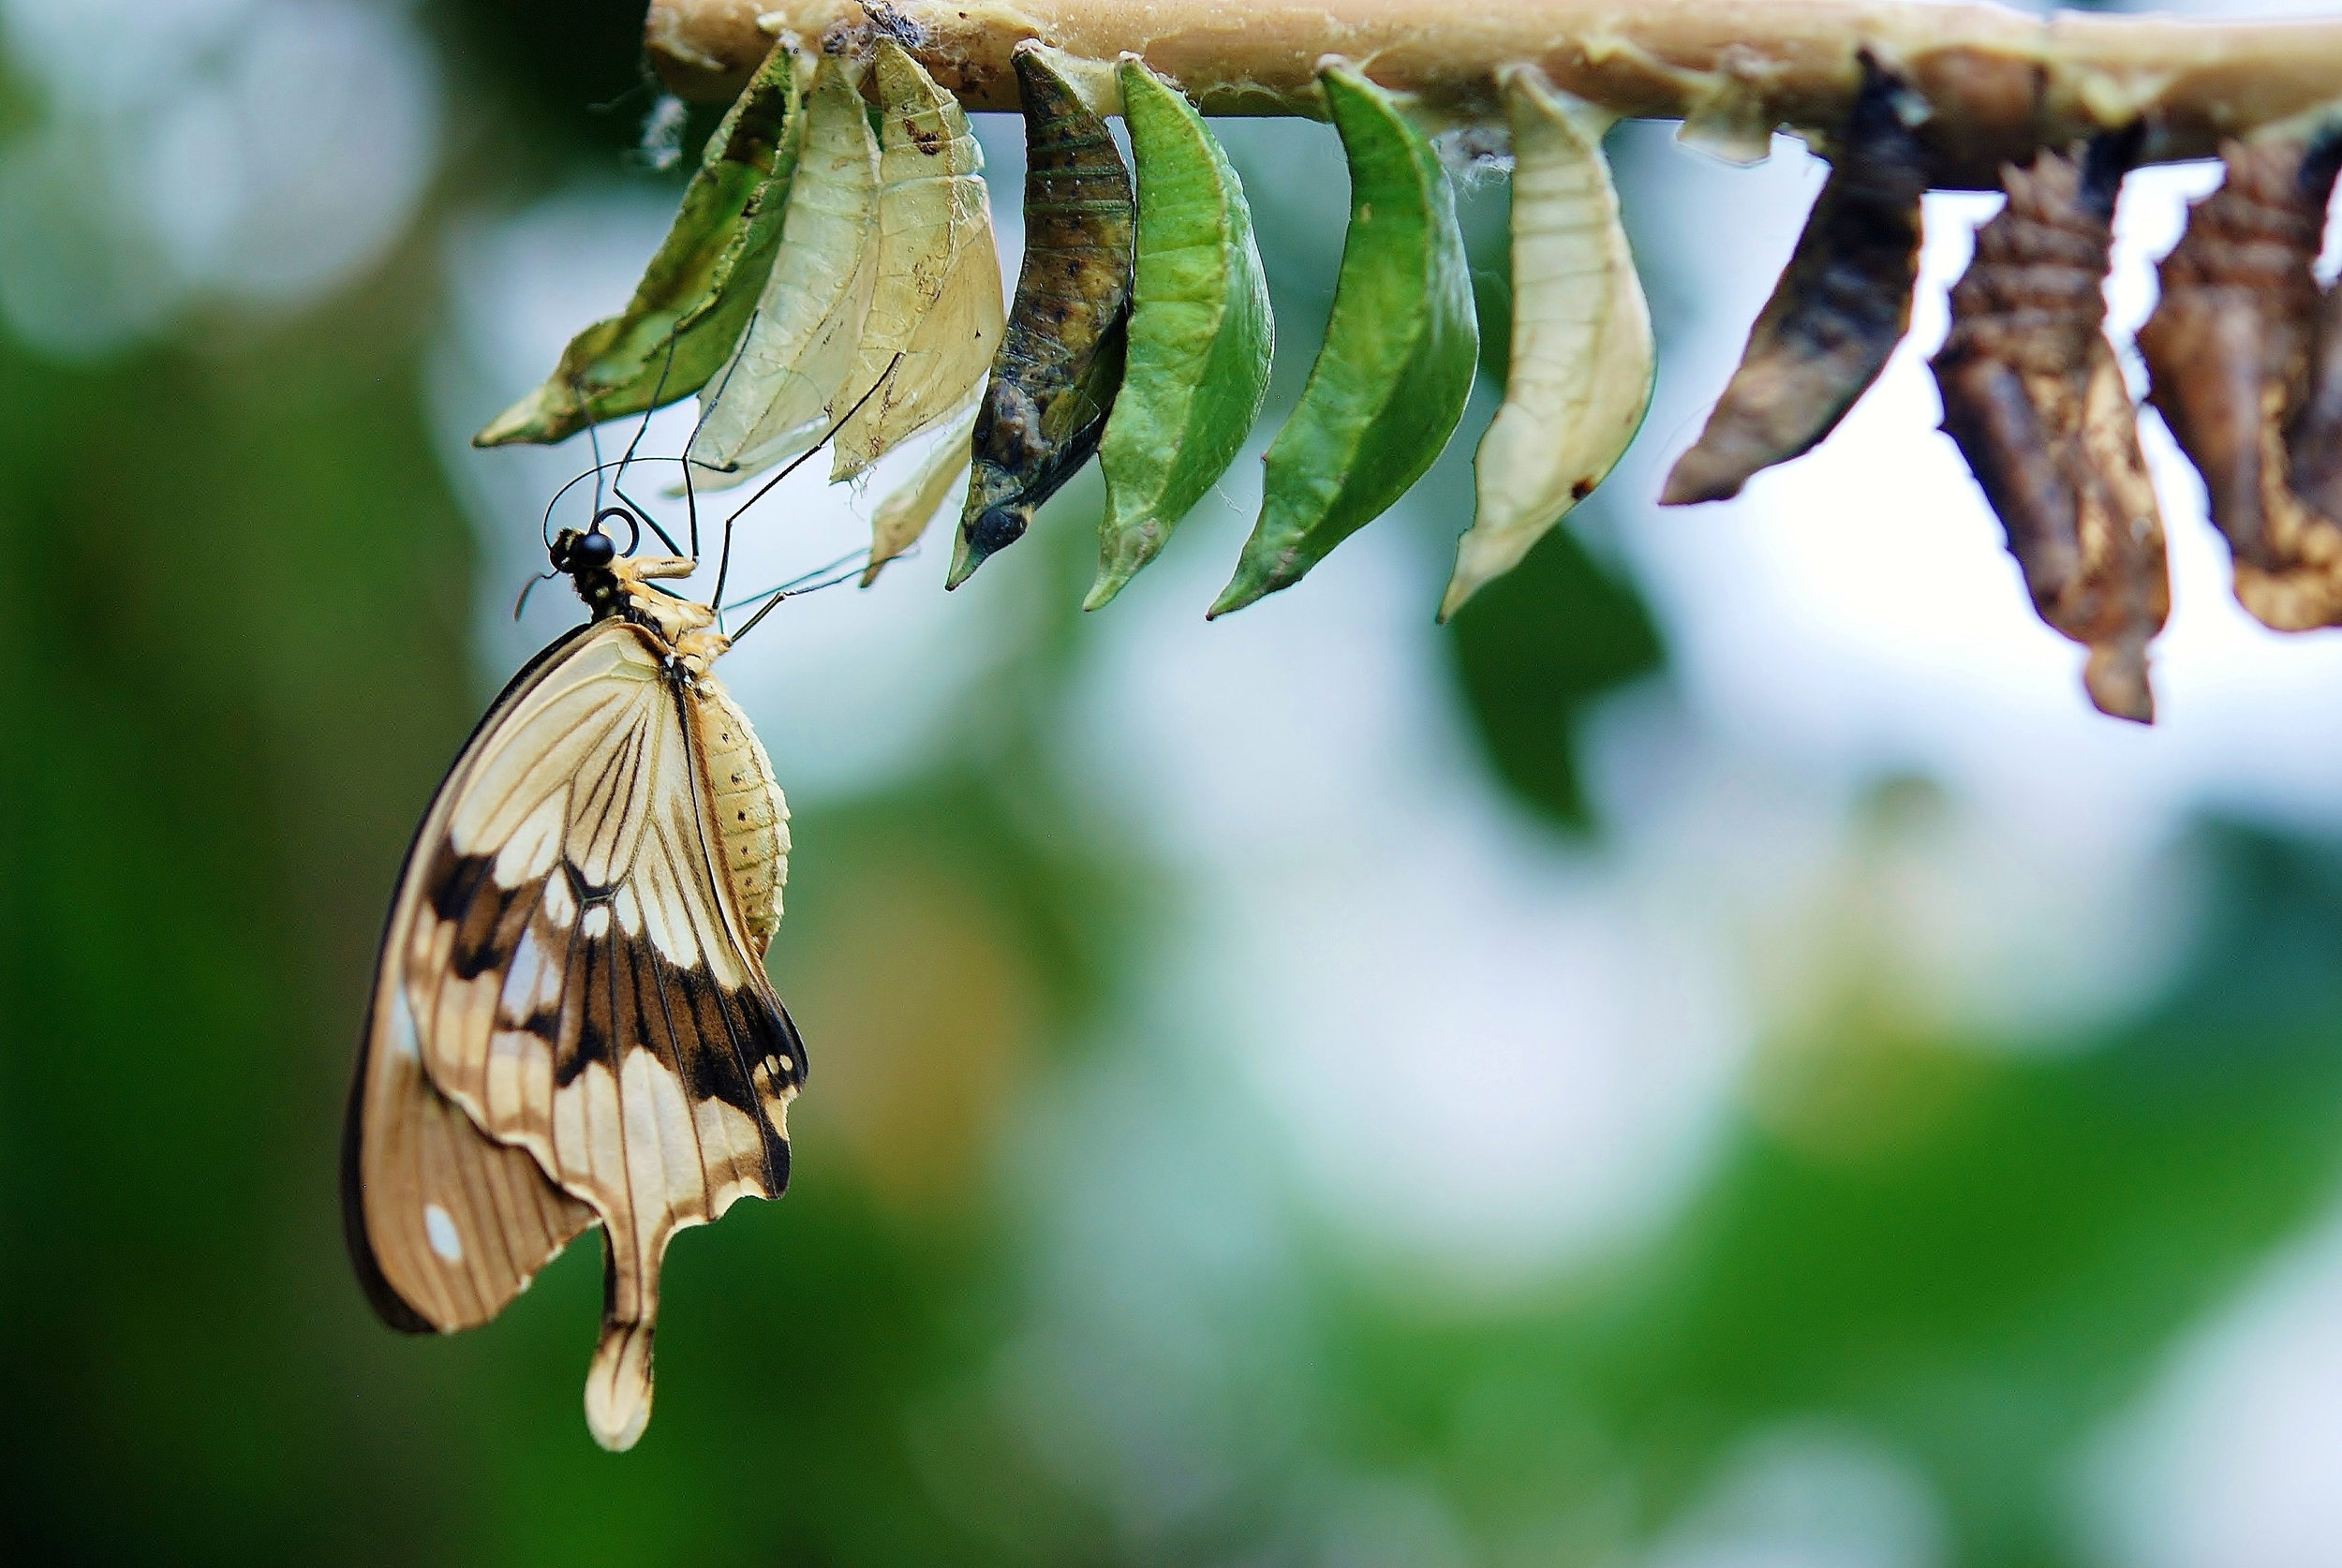 Canva - Brown and White Swallowtail Butterfly Under White Green and Brown Cocoon in Shallow Focus Lens.jpg